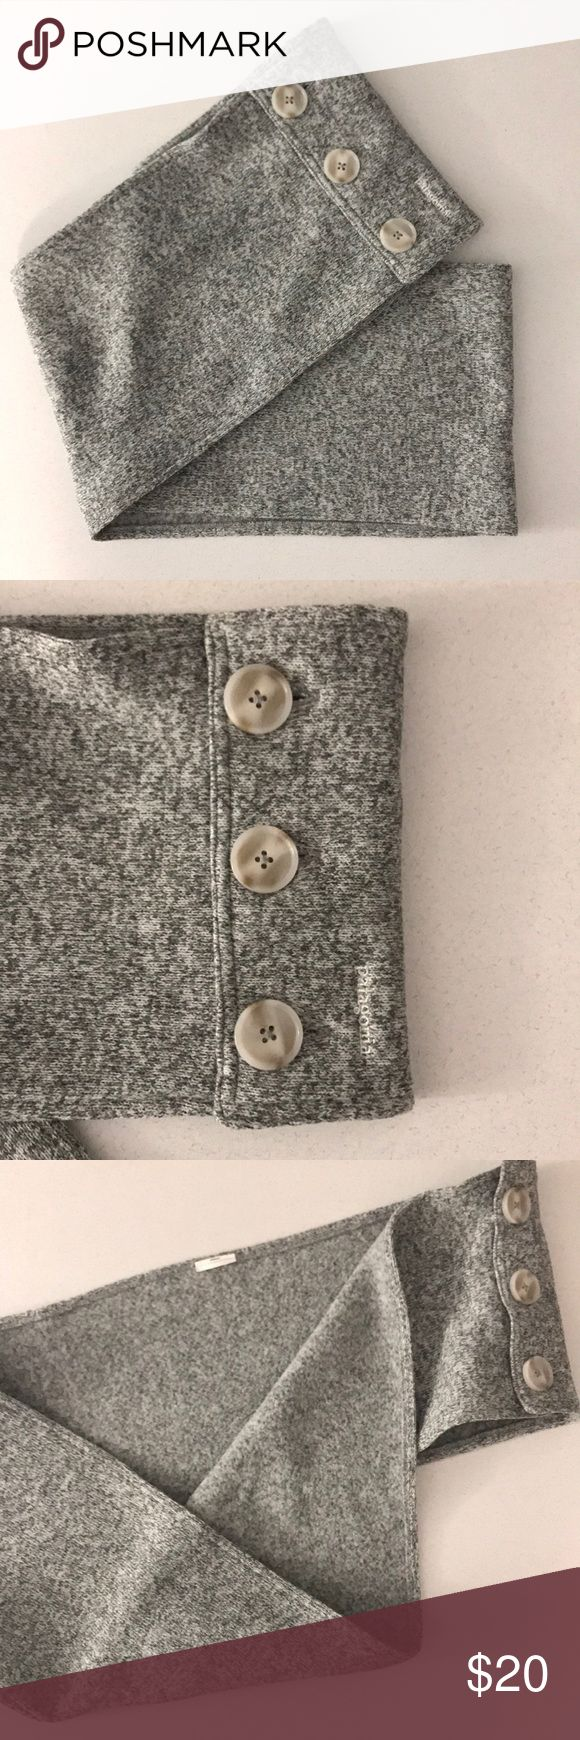 Women's Patagonia Better Sweater Scarf This new Patagonia scarf is the Birch White color and has three functional buttons. The tag was removed due to irritation (shown in picture 3). Worn once! Patagonia Accessories Scarves & Wraps